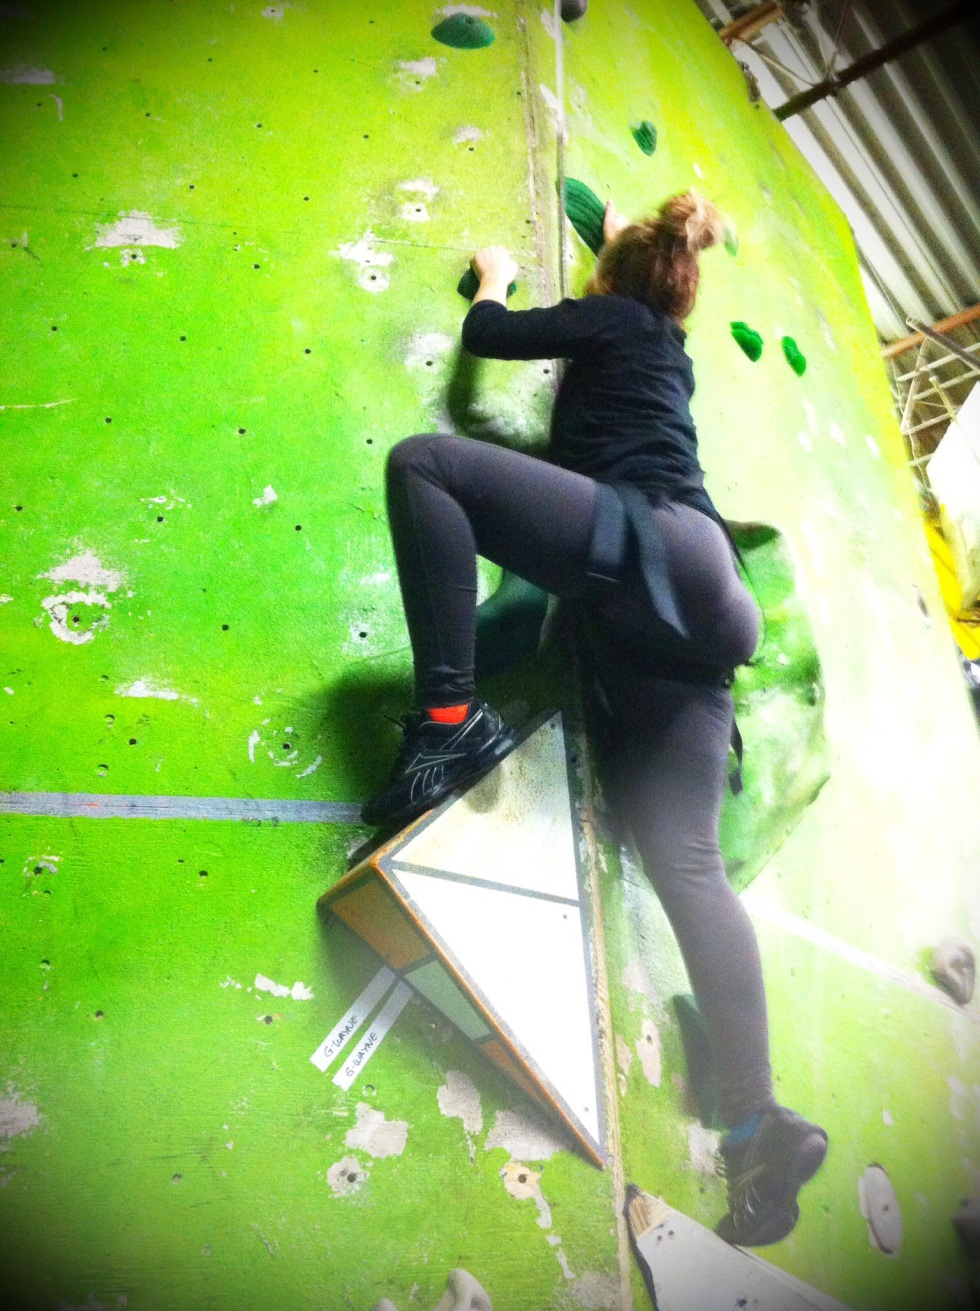 Here I go up the wall!